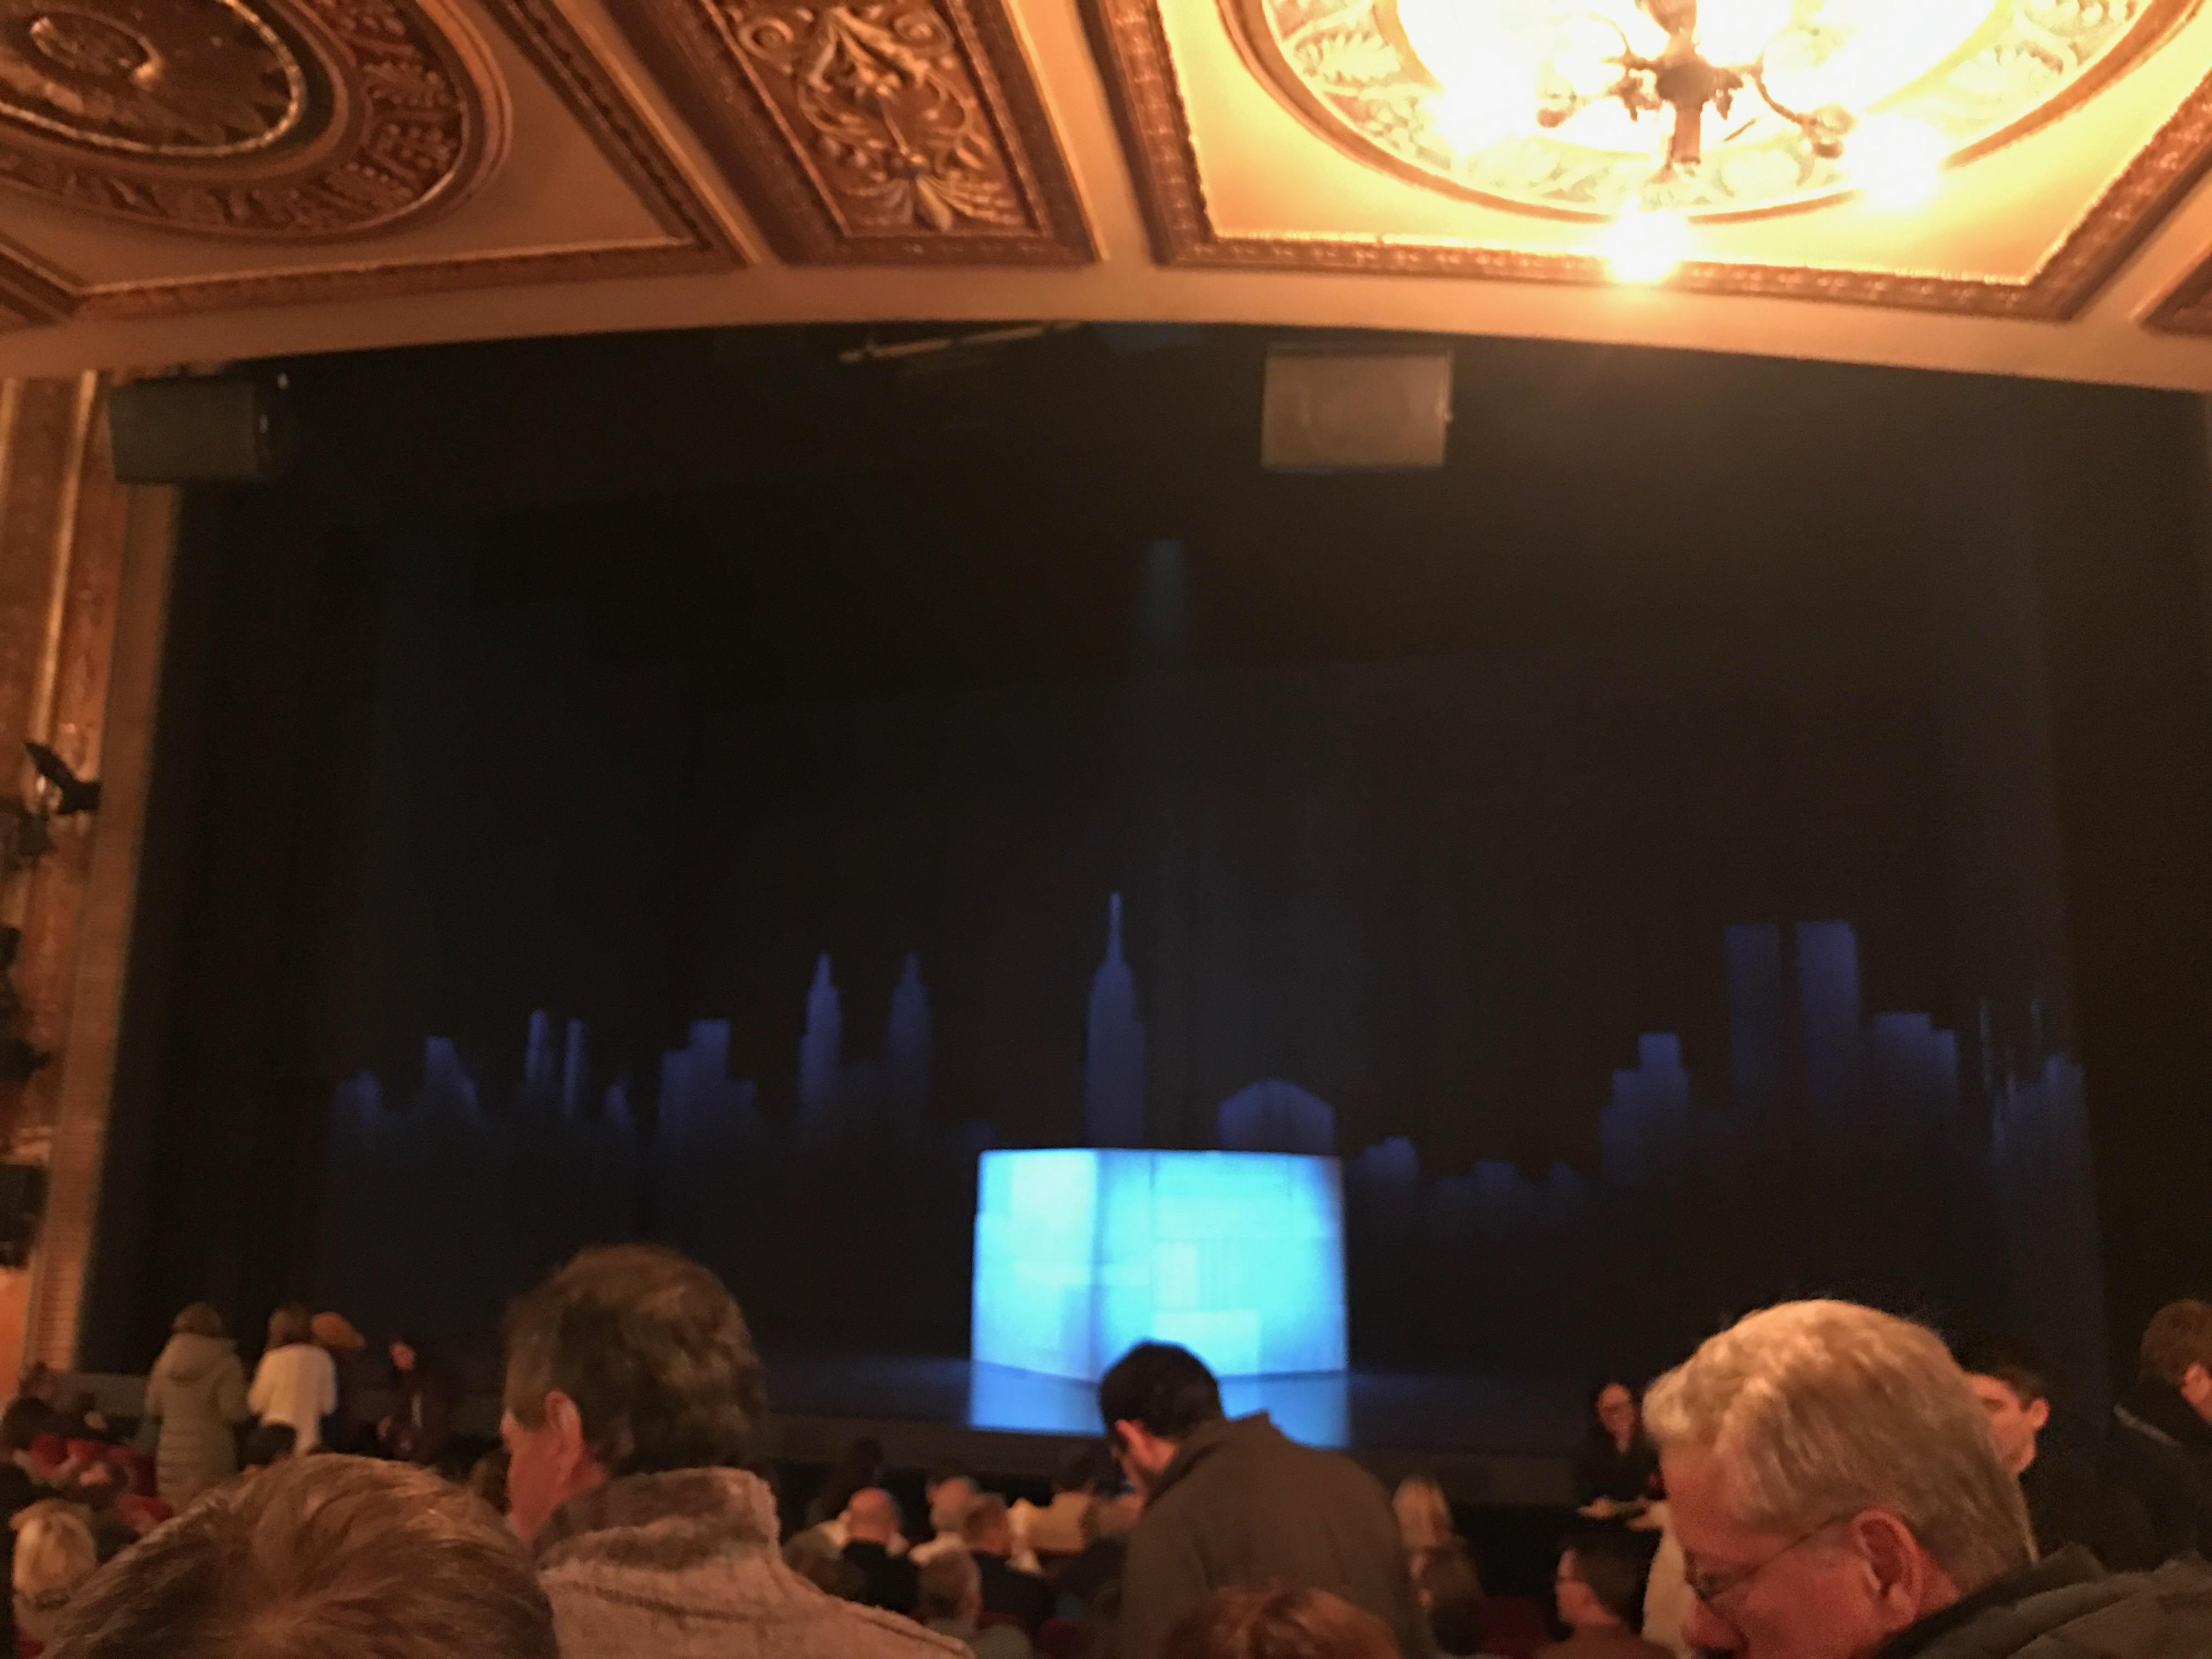 Walter Kerr Theatre Section Orchestra Row N Seat 101